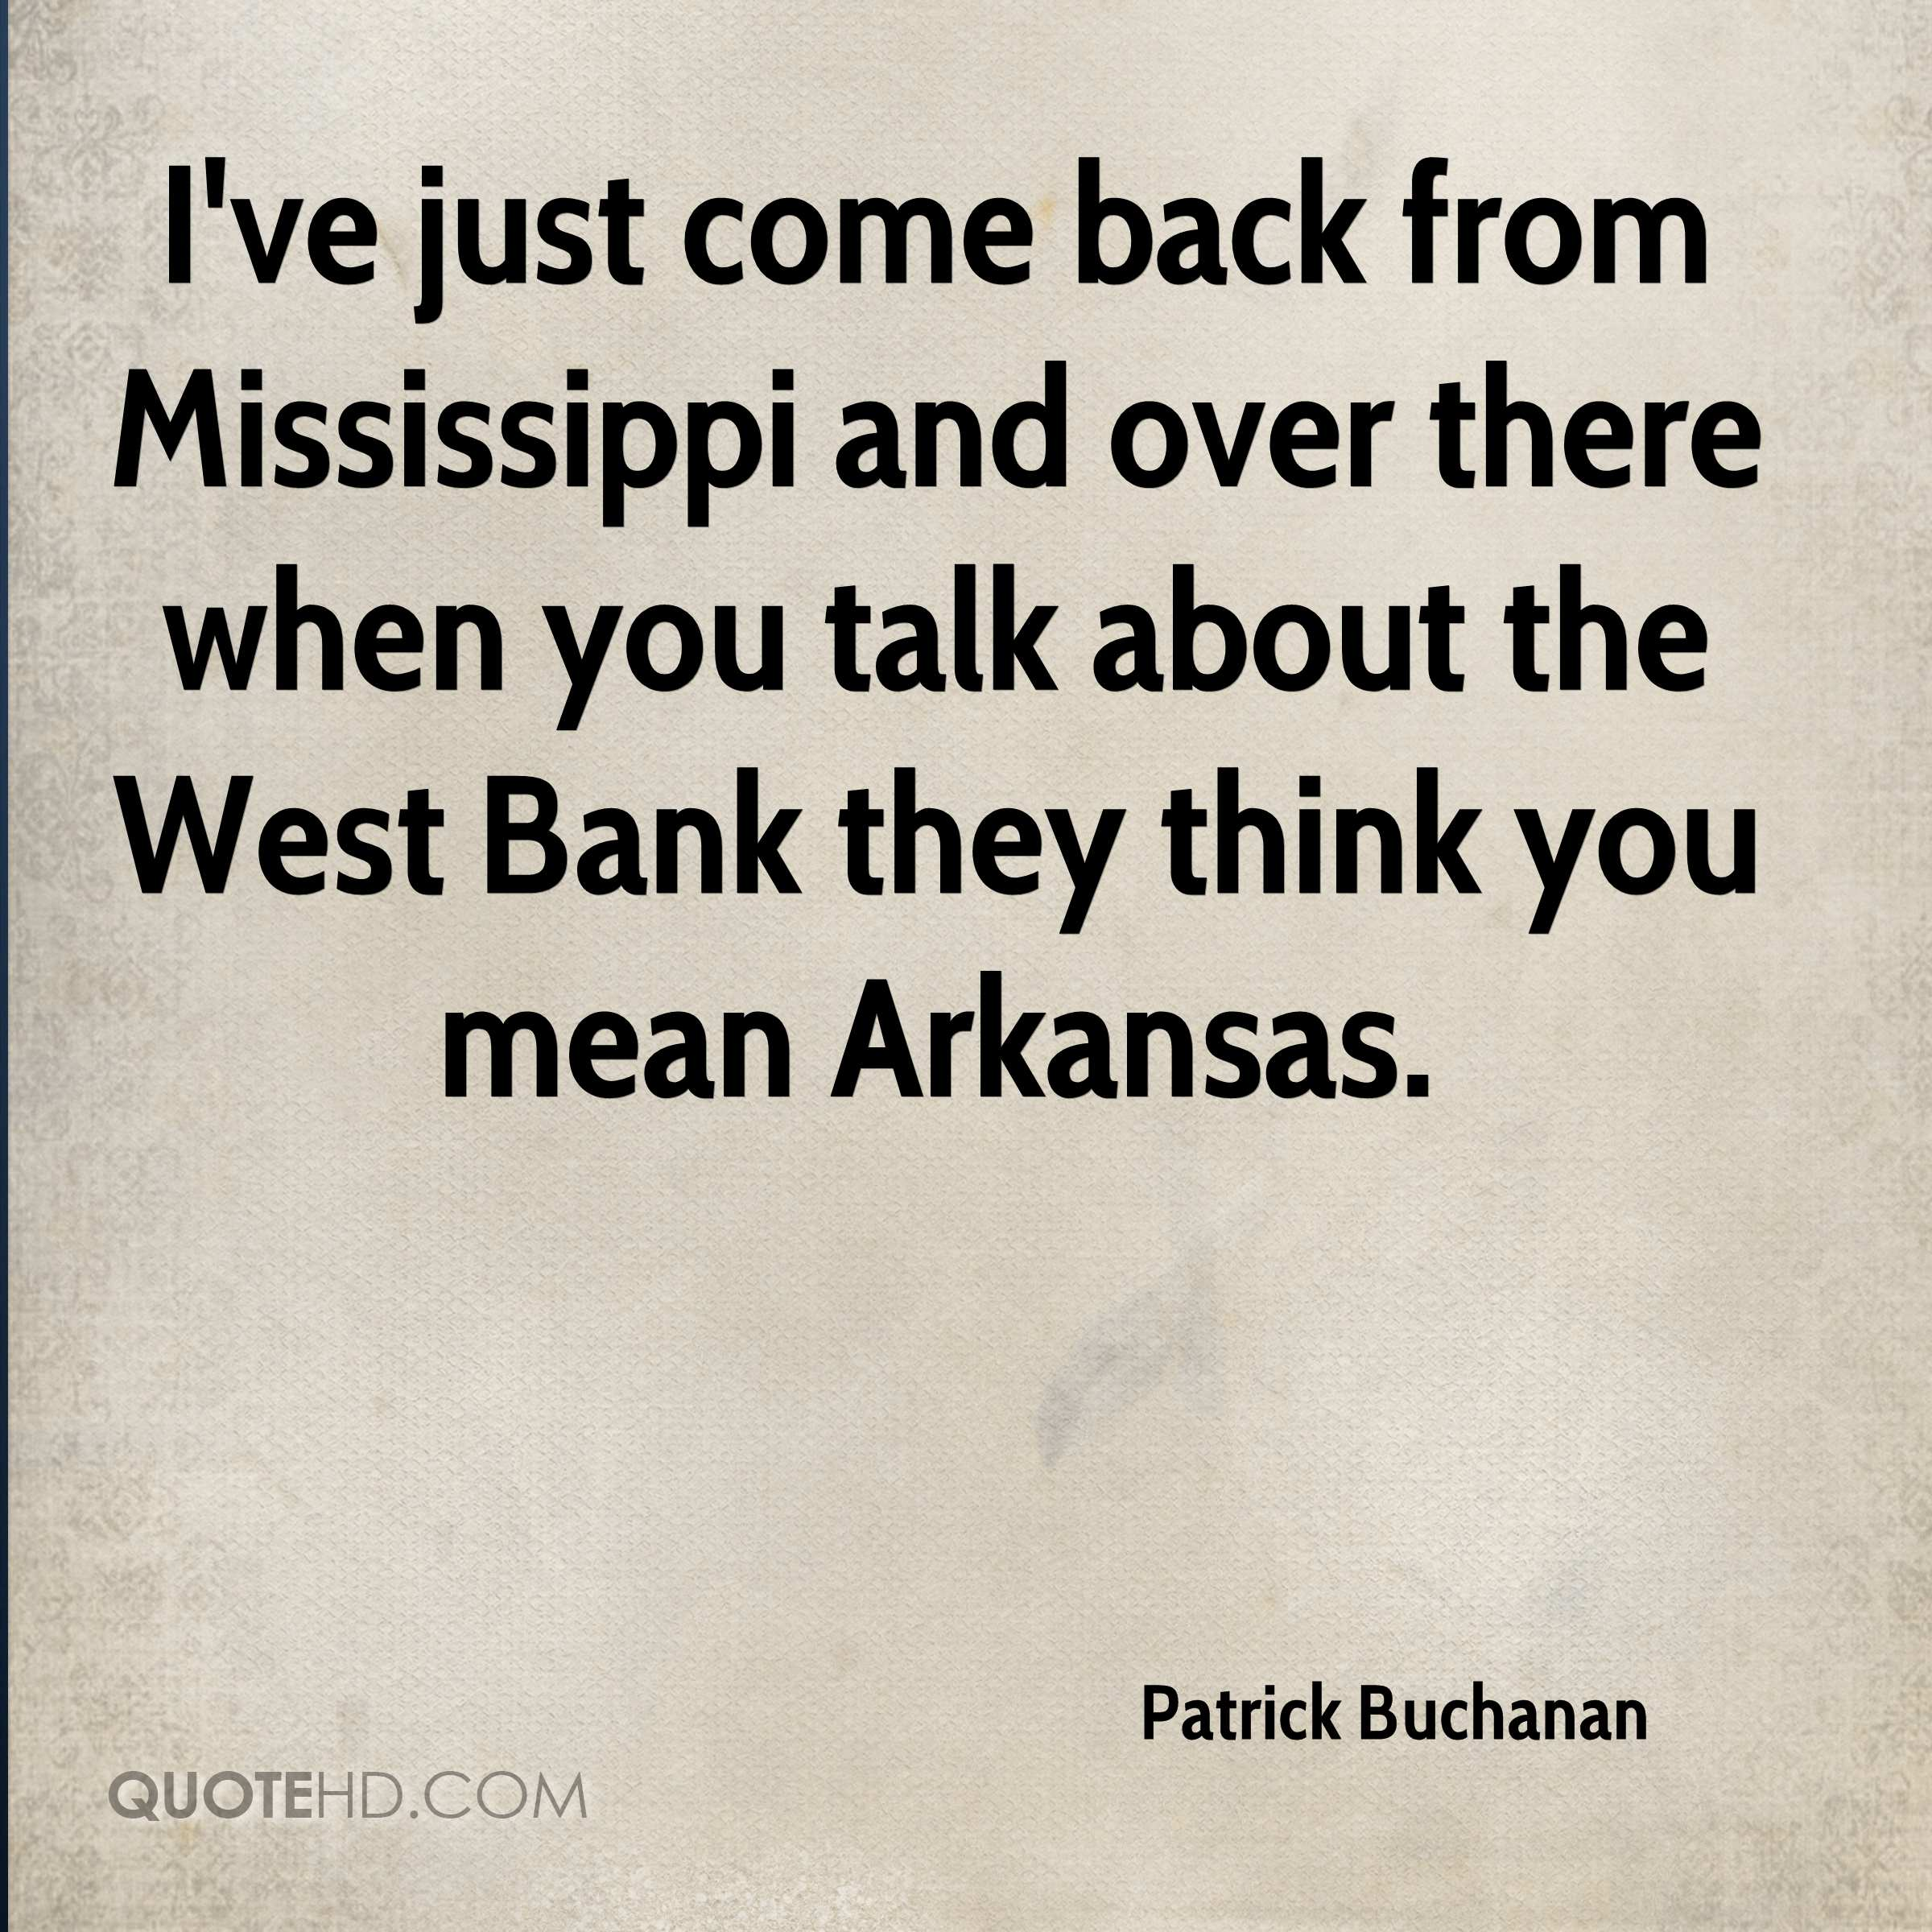 I've just come back from Mississippi and over there when you talk about the West Bank they think you mean Arkansas.